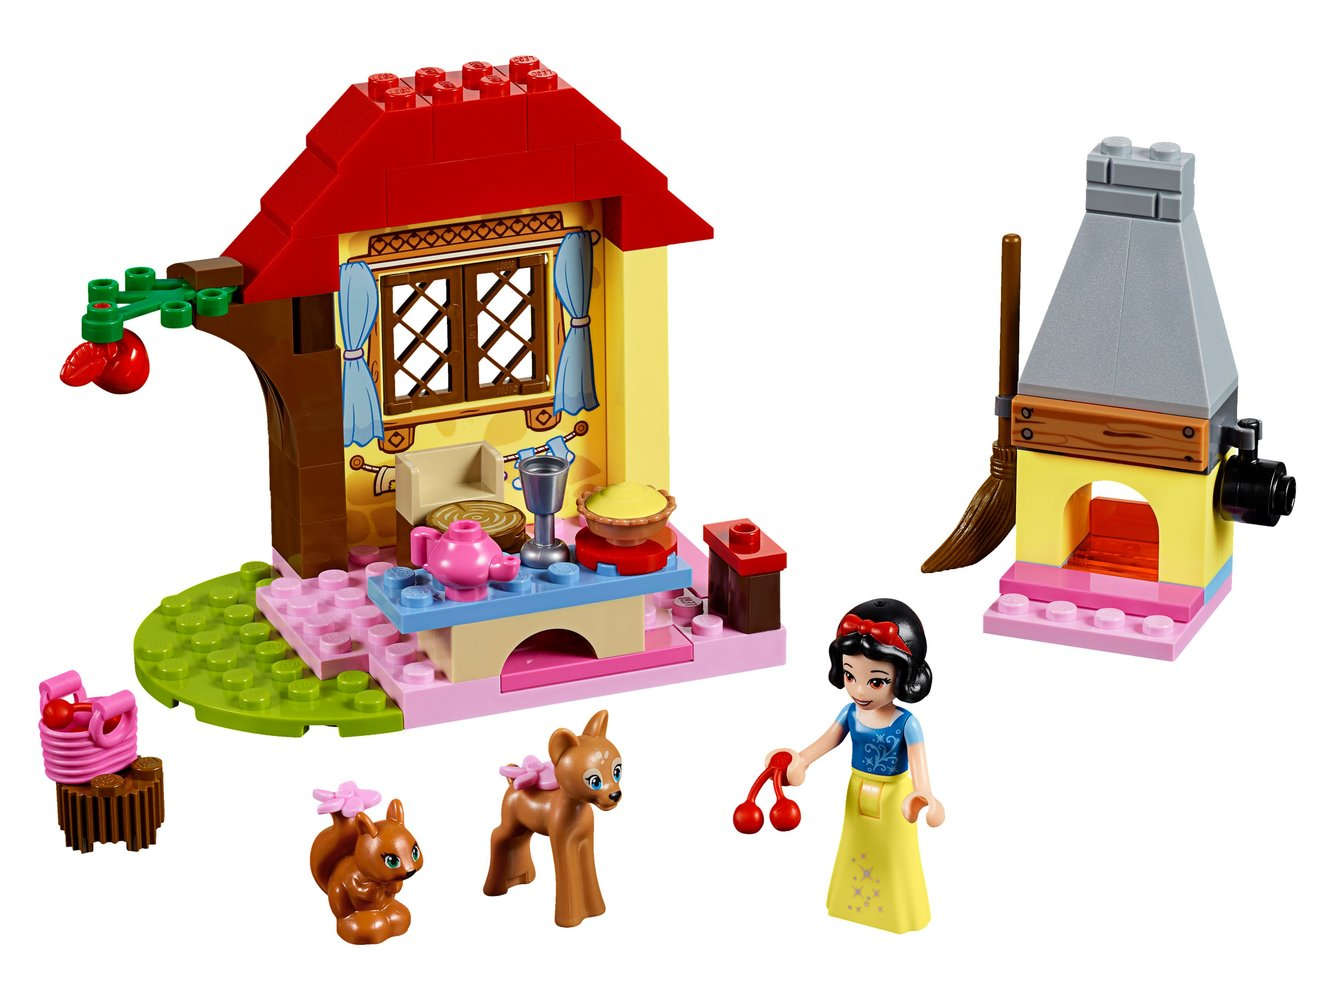 Snow White's Forest Cottage